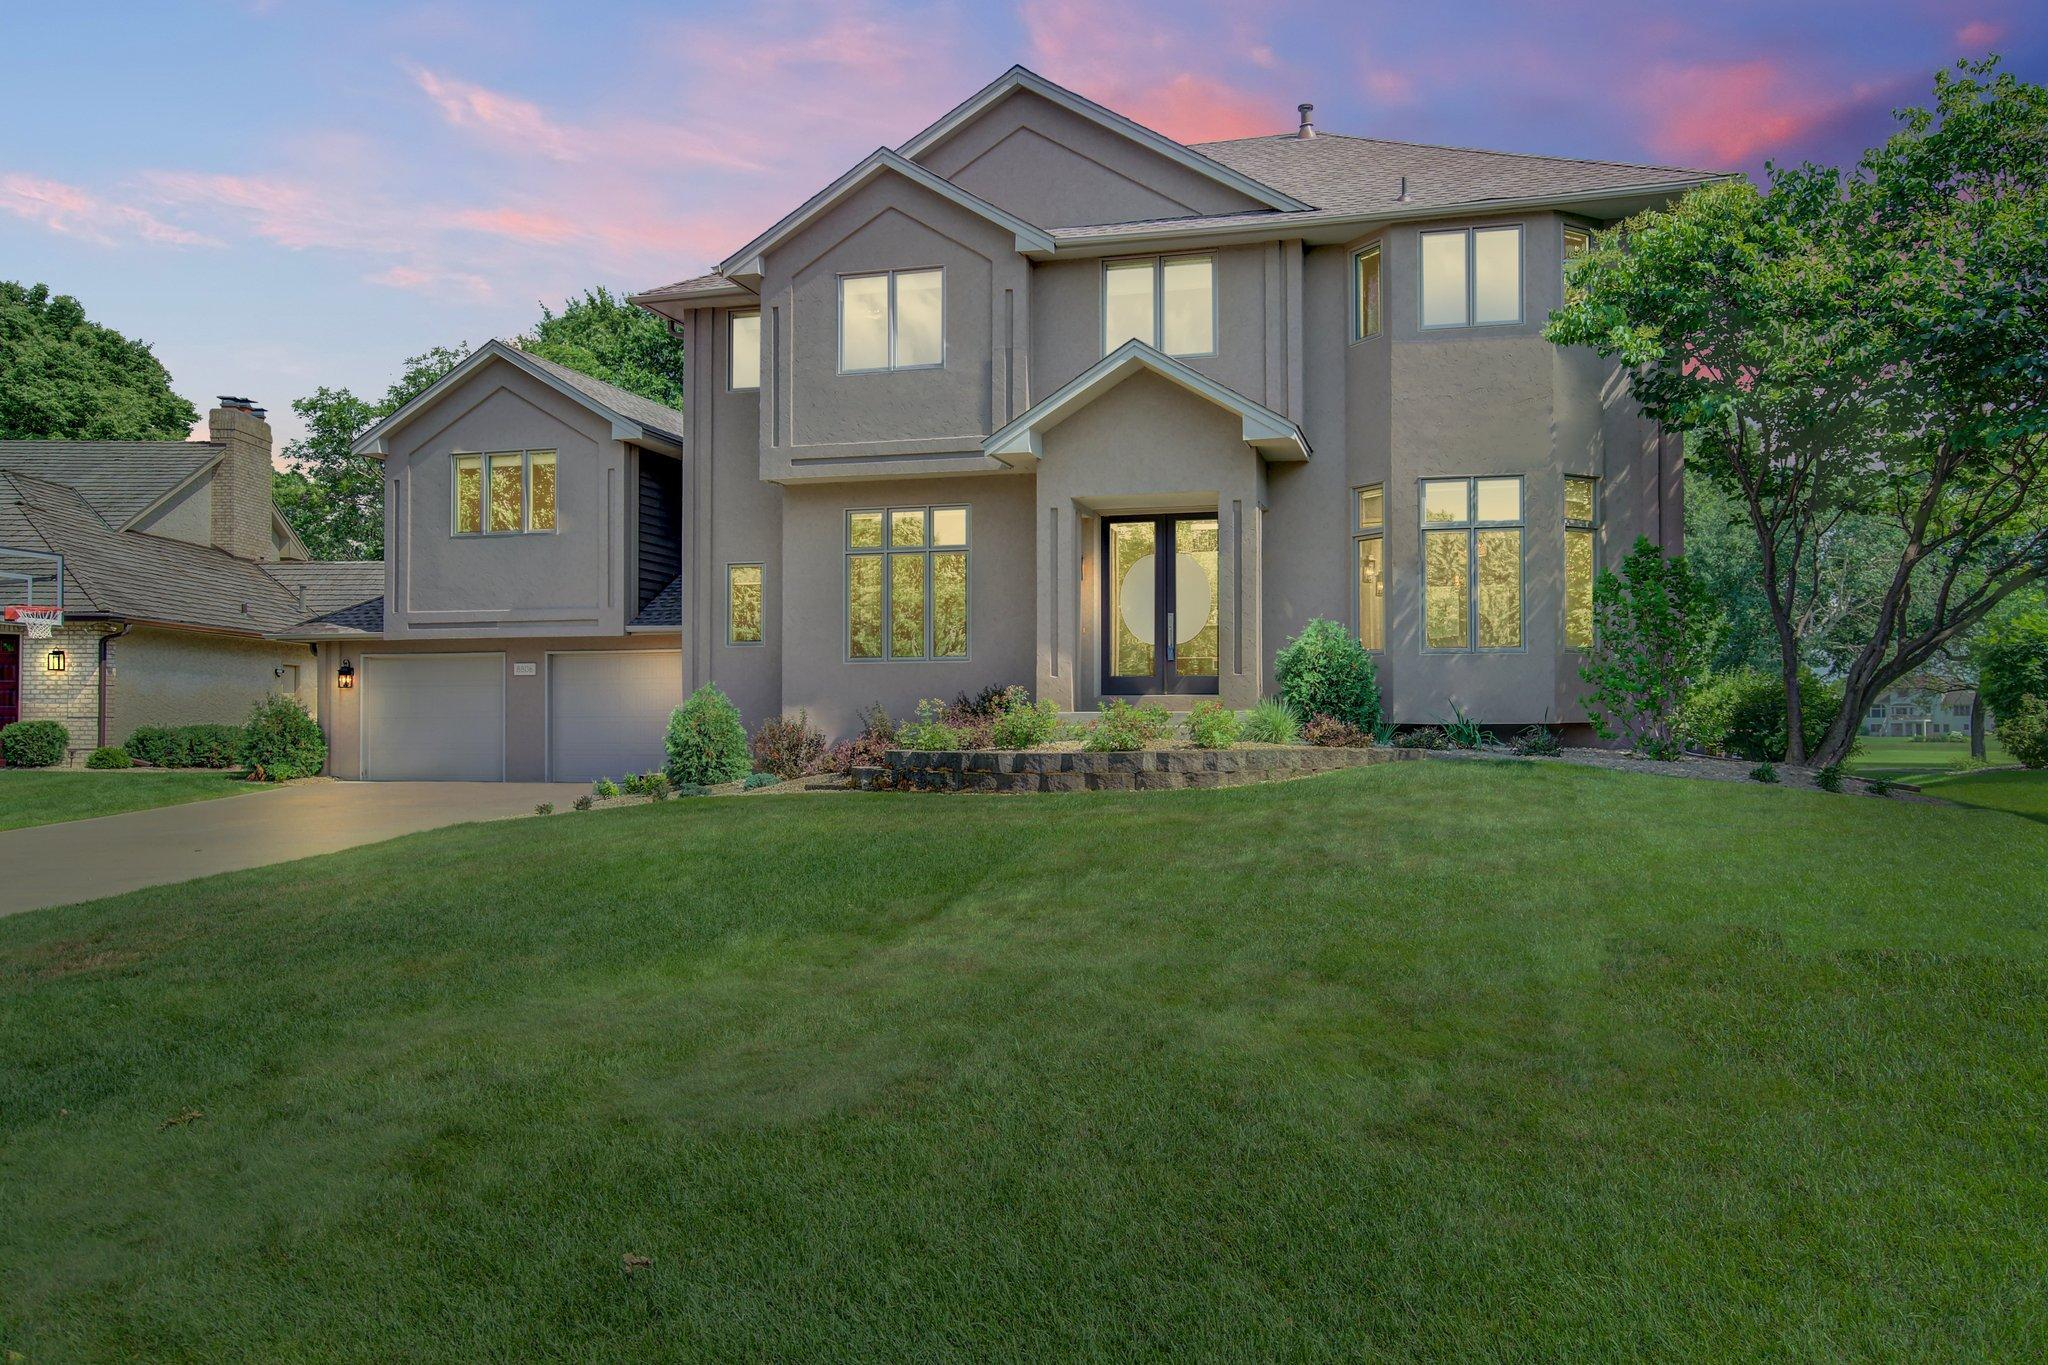 8806 Windsor Property Photo - Brooklyn Park, MN real estate listing